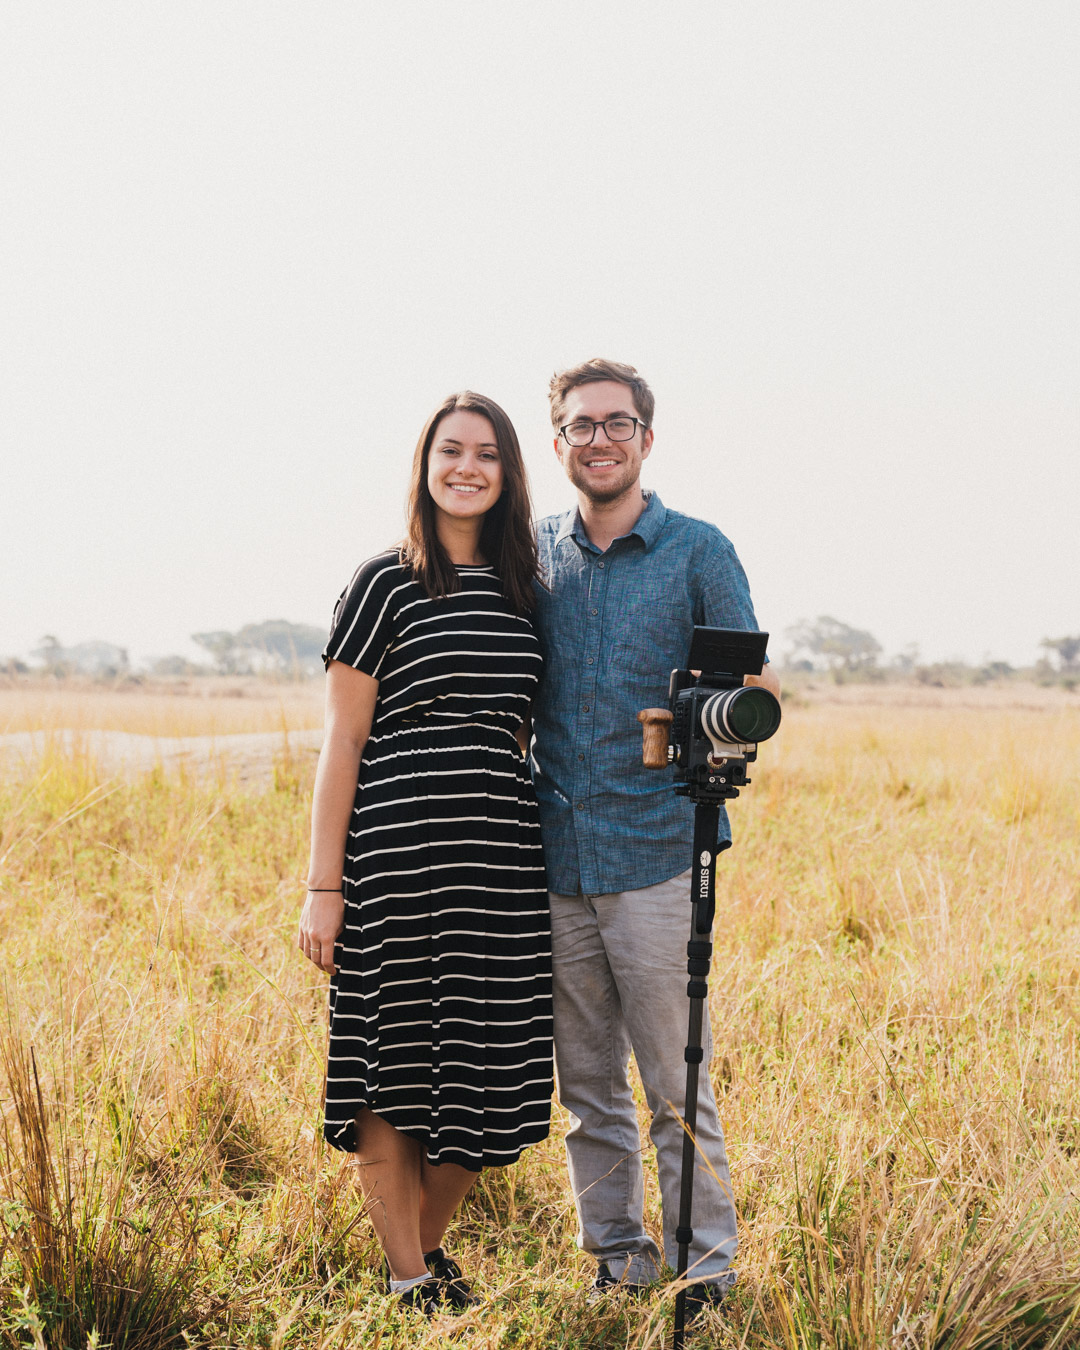 Blake & Melanie Hemmerling in Uganda, Africa shooting a project.